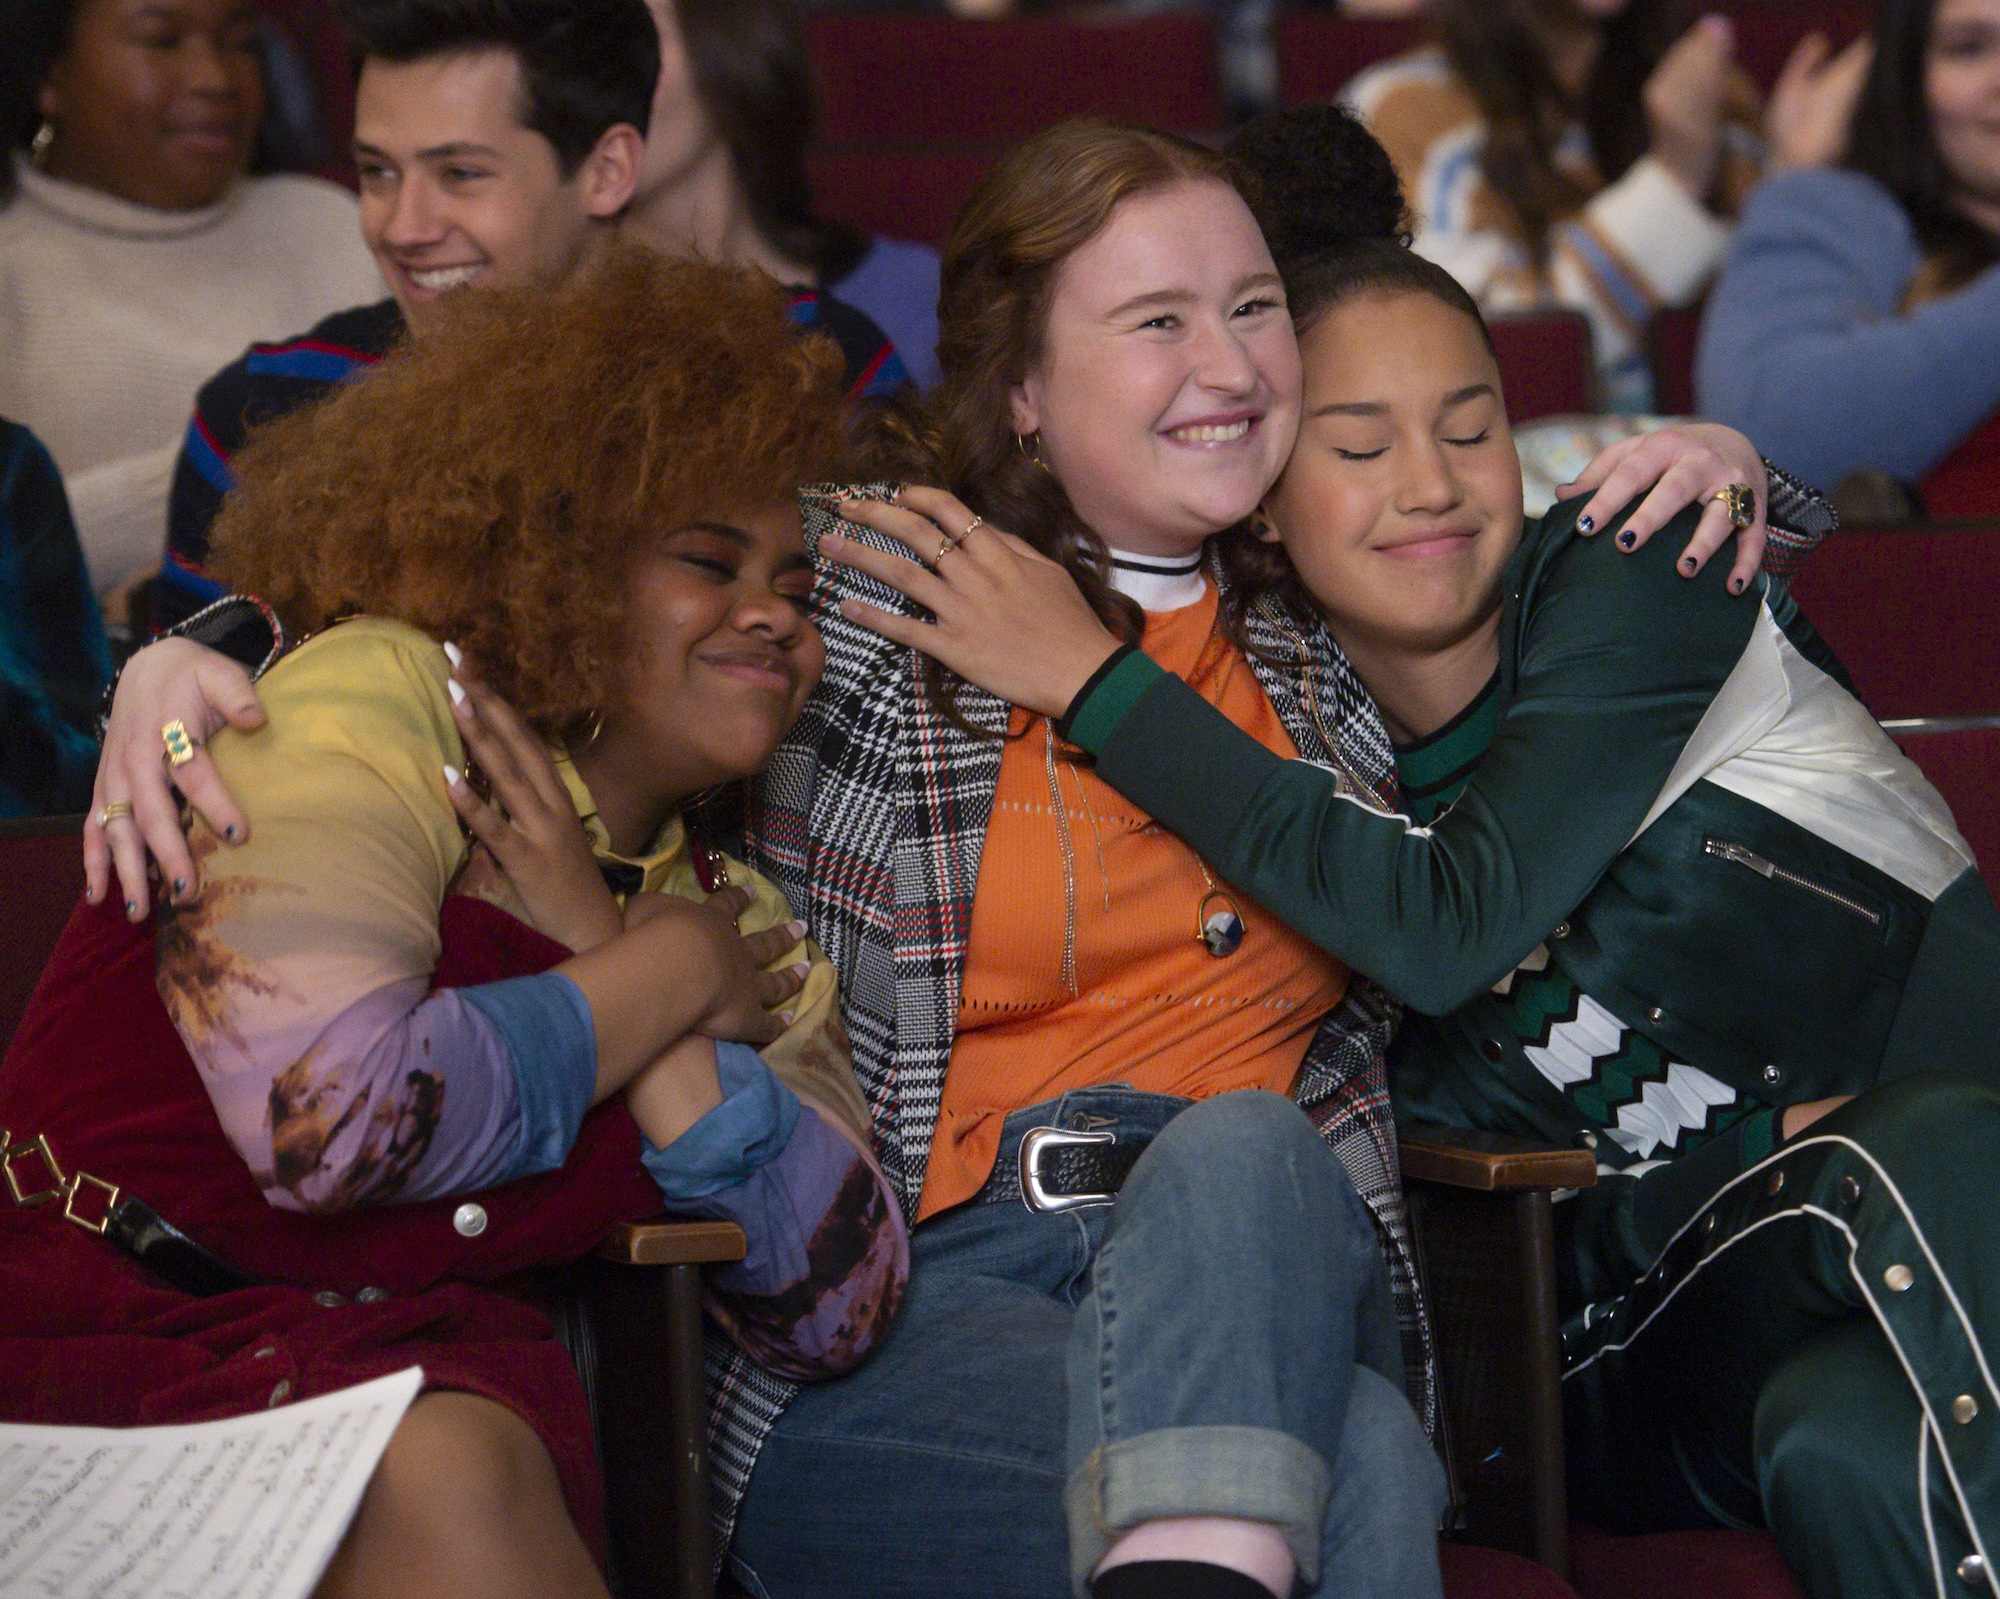 Dara Reneé as Kourtney, Julia Lester as Ashlyn, and Sofia Wylie as Gina in Episode 2 of 'High School Musical: The Musical: The Series' Season 2 | Disney+/Fred Hayes